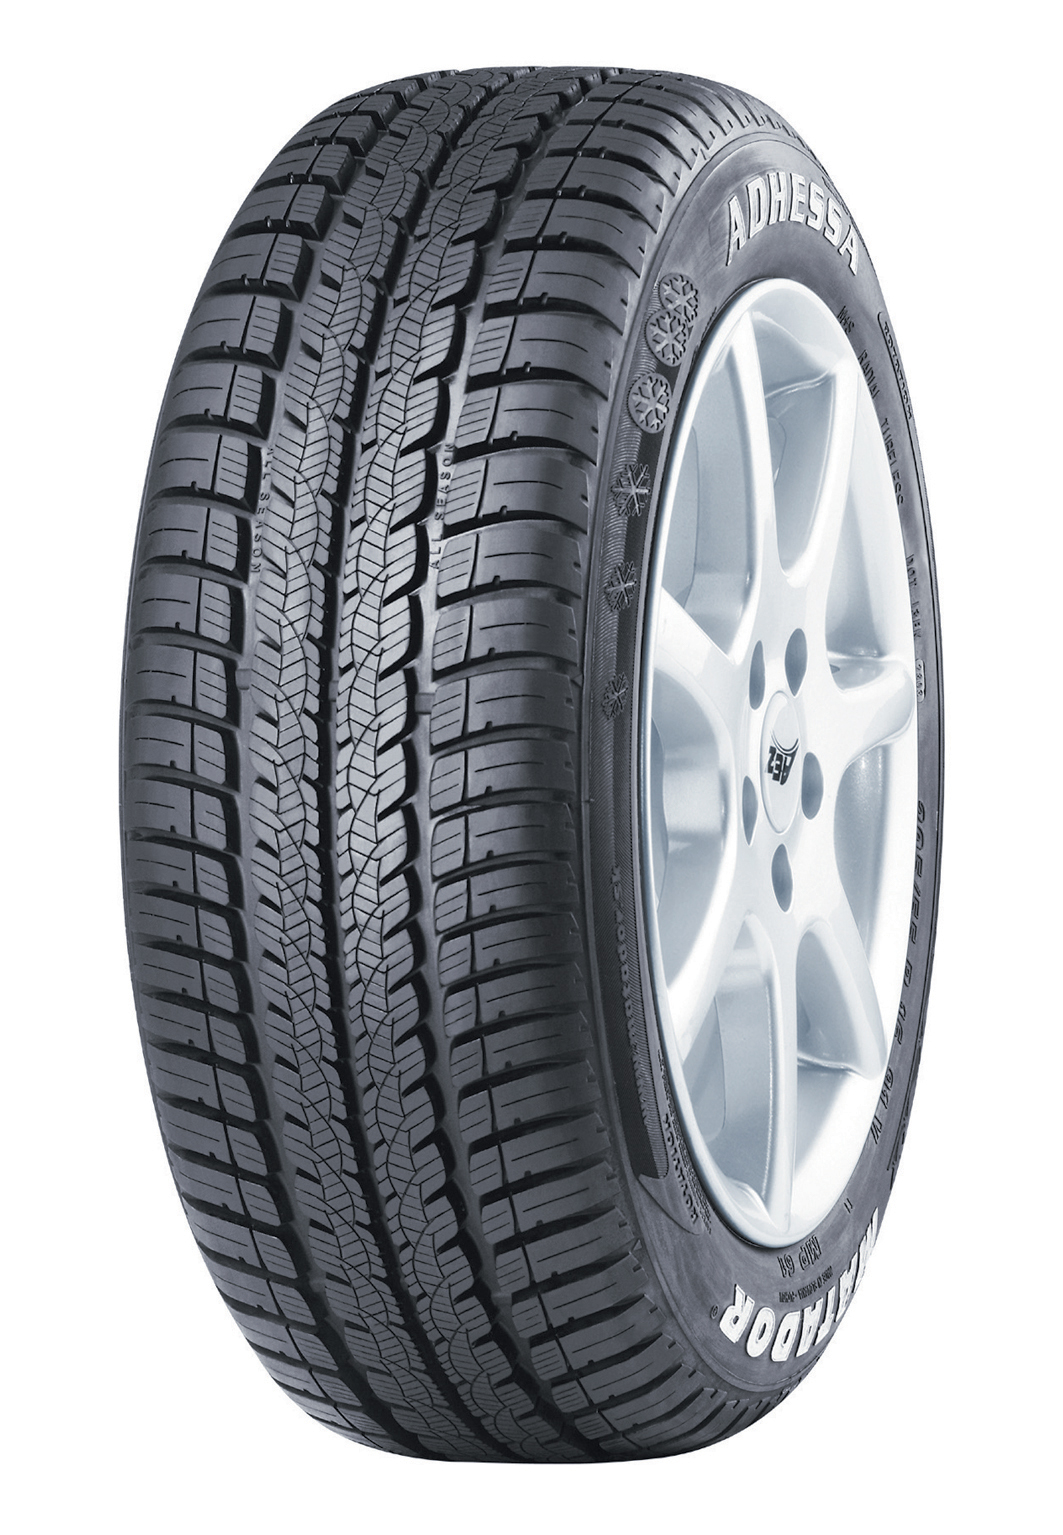 Anvelopa all seasons MATADOR mp 61 adhessa all season 195/65 R15 91H